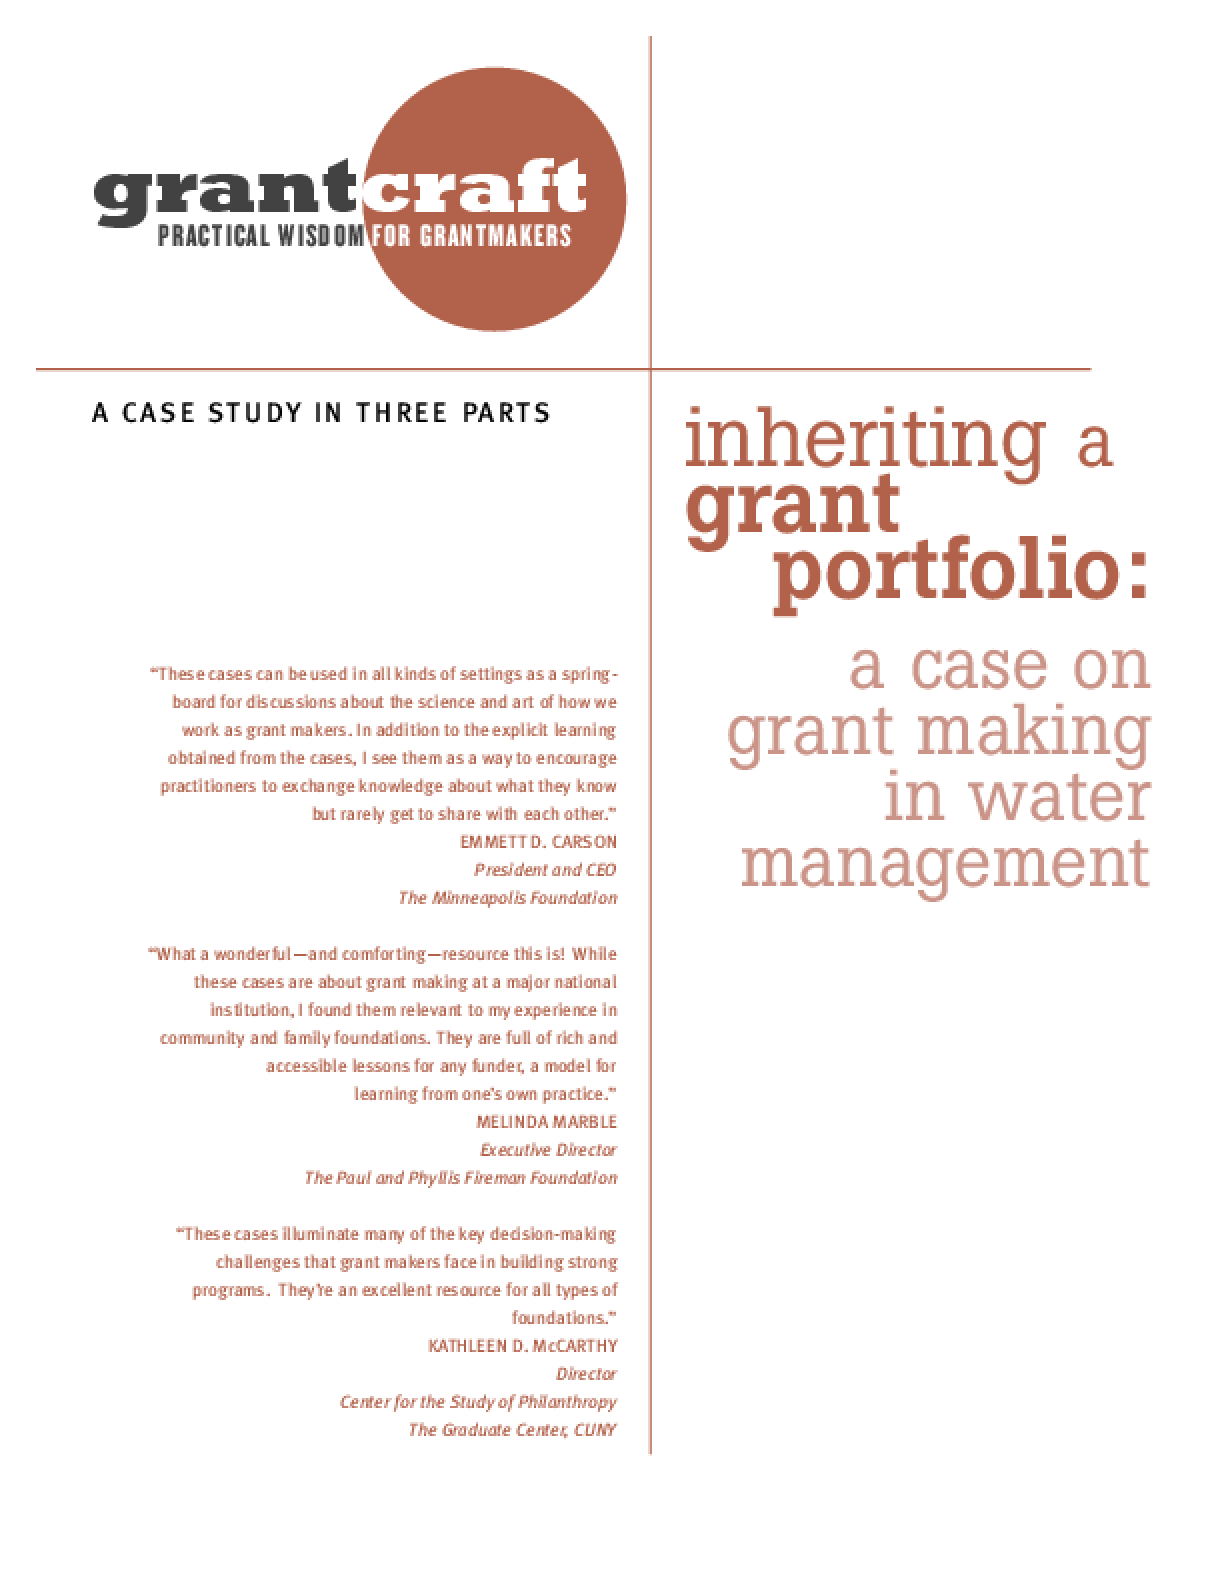 Inheriting a Grant Portfolio: A Case on Grantmaking in Water Management